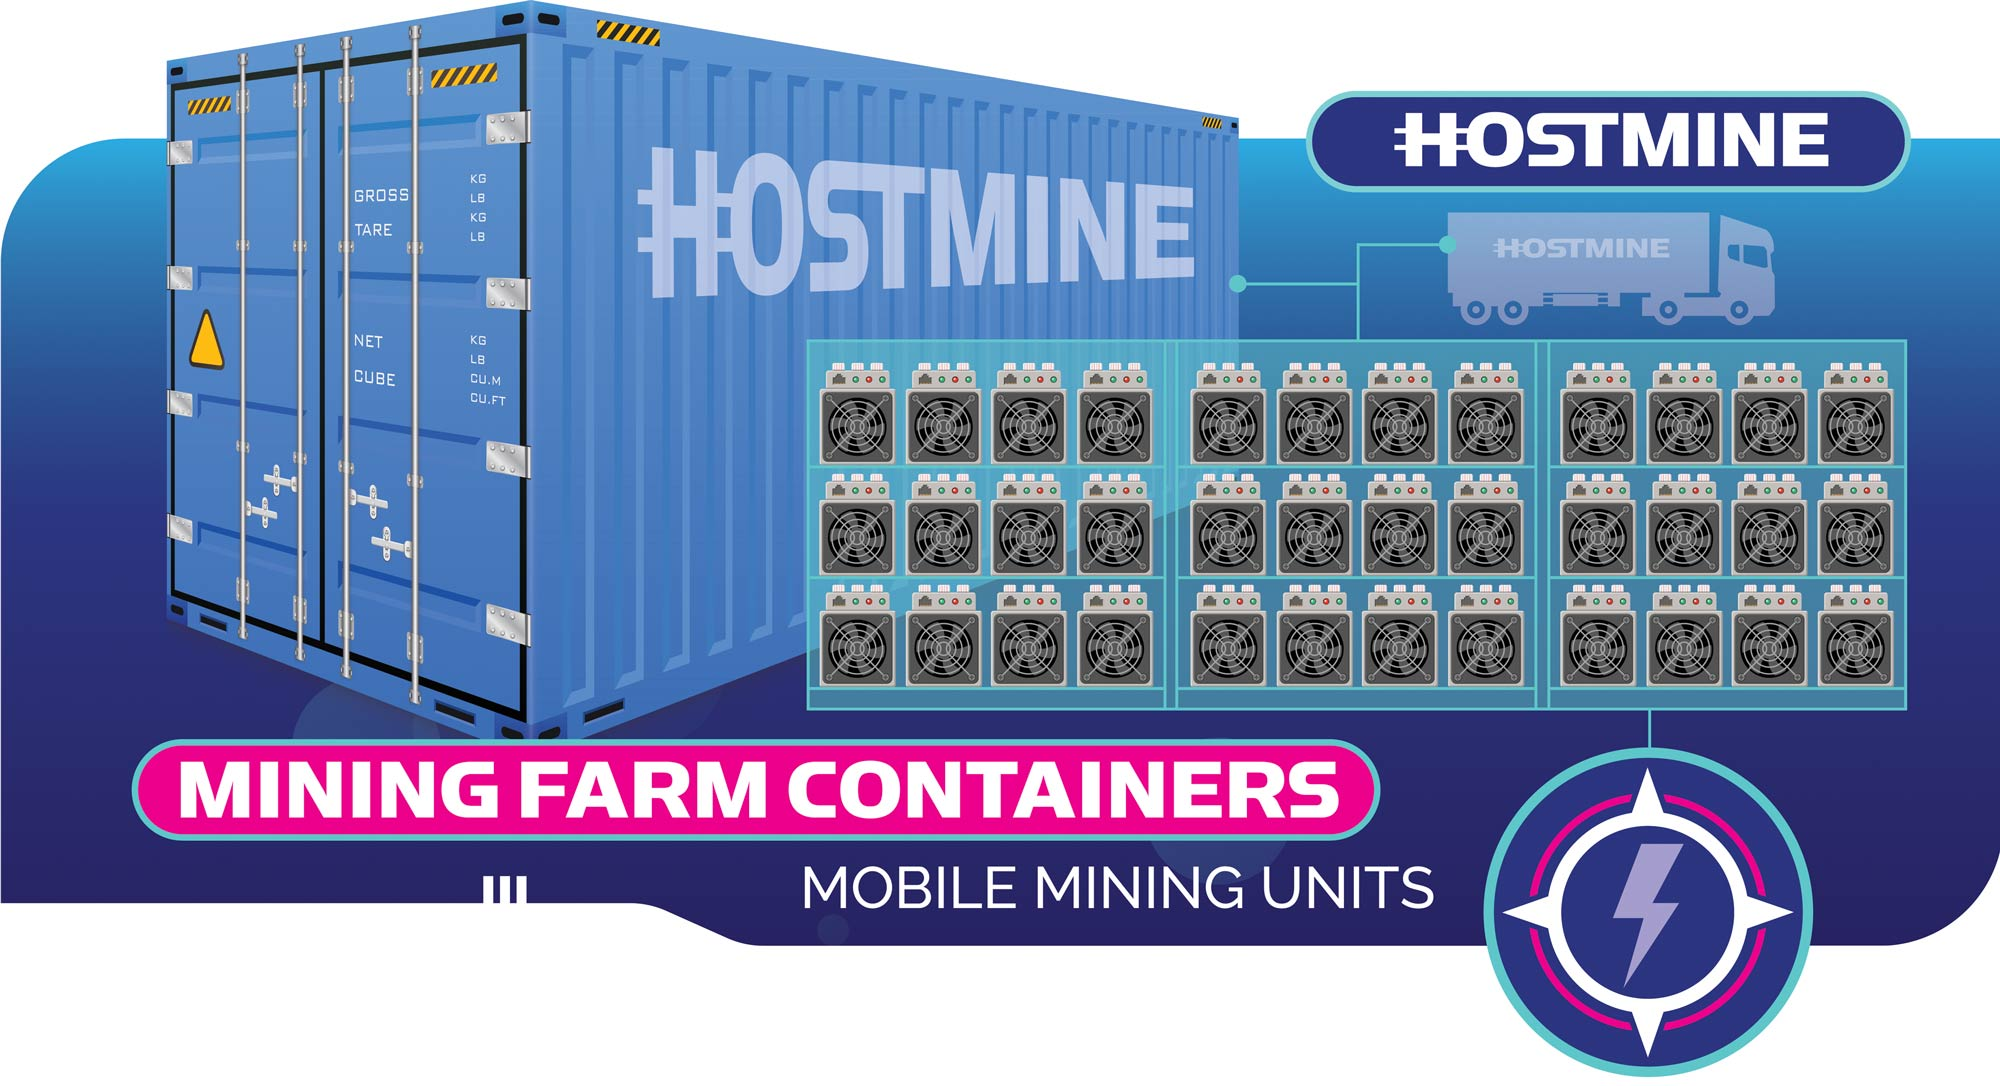 Mining Farm Containers | Hostmine